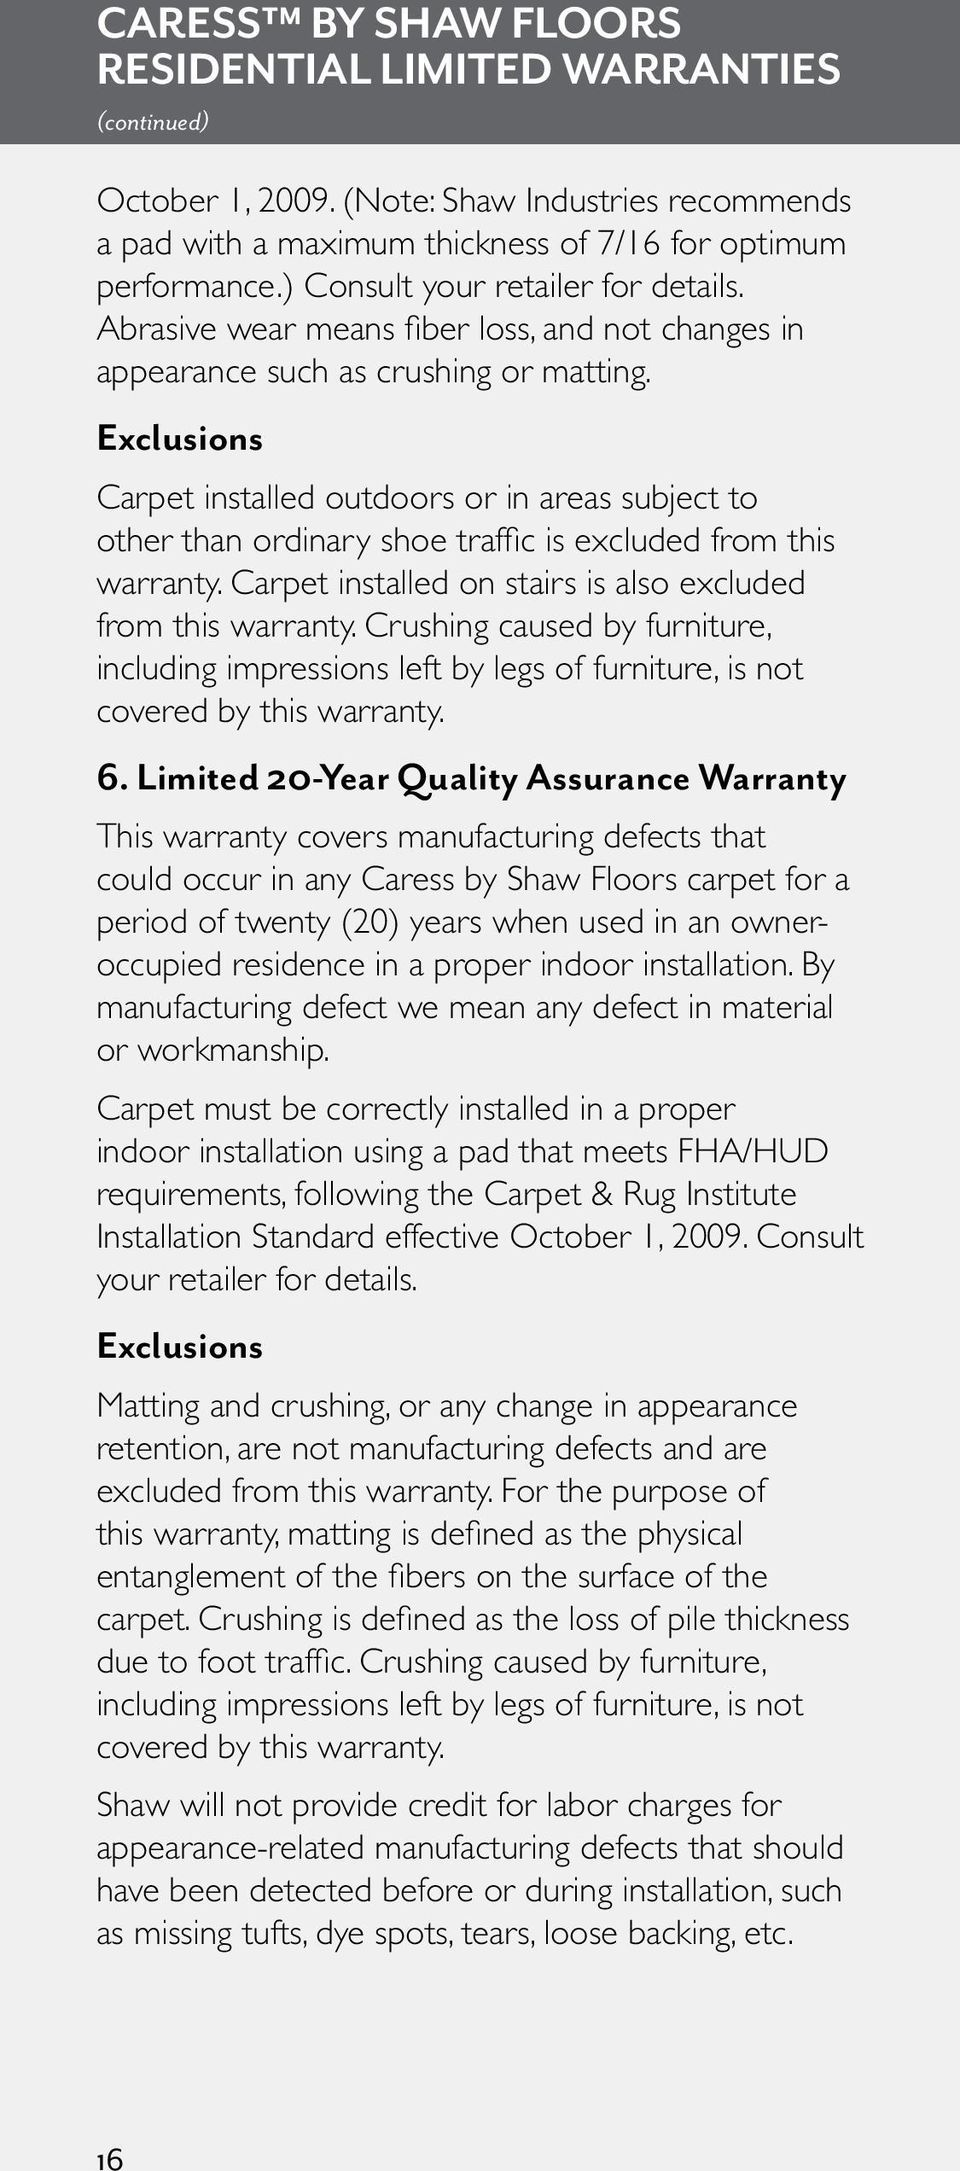 Exclusions Carpet installed outdoors or in areas subject to other than ordinary shoe traffic is excluded from this warranty. Carpet installed on stairs is also excluded from this warranty.